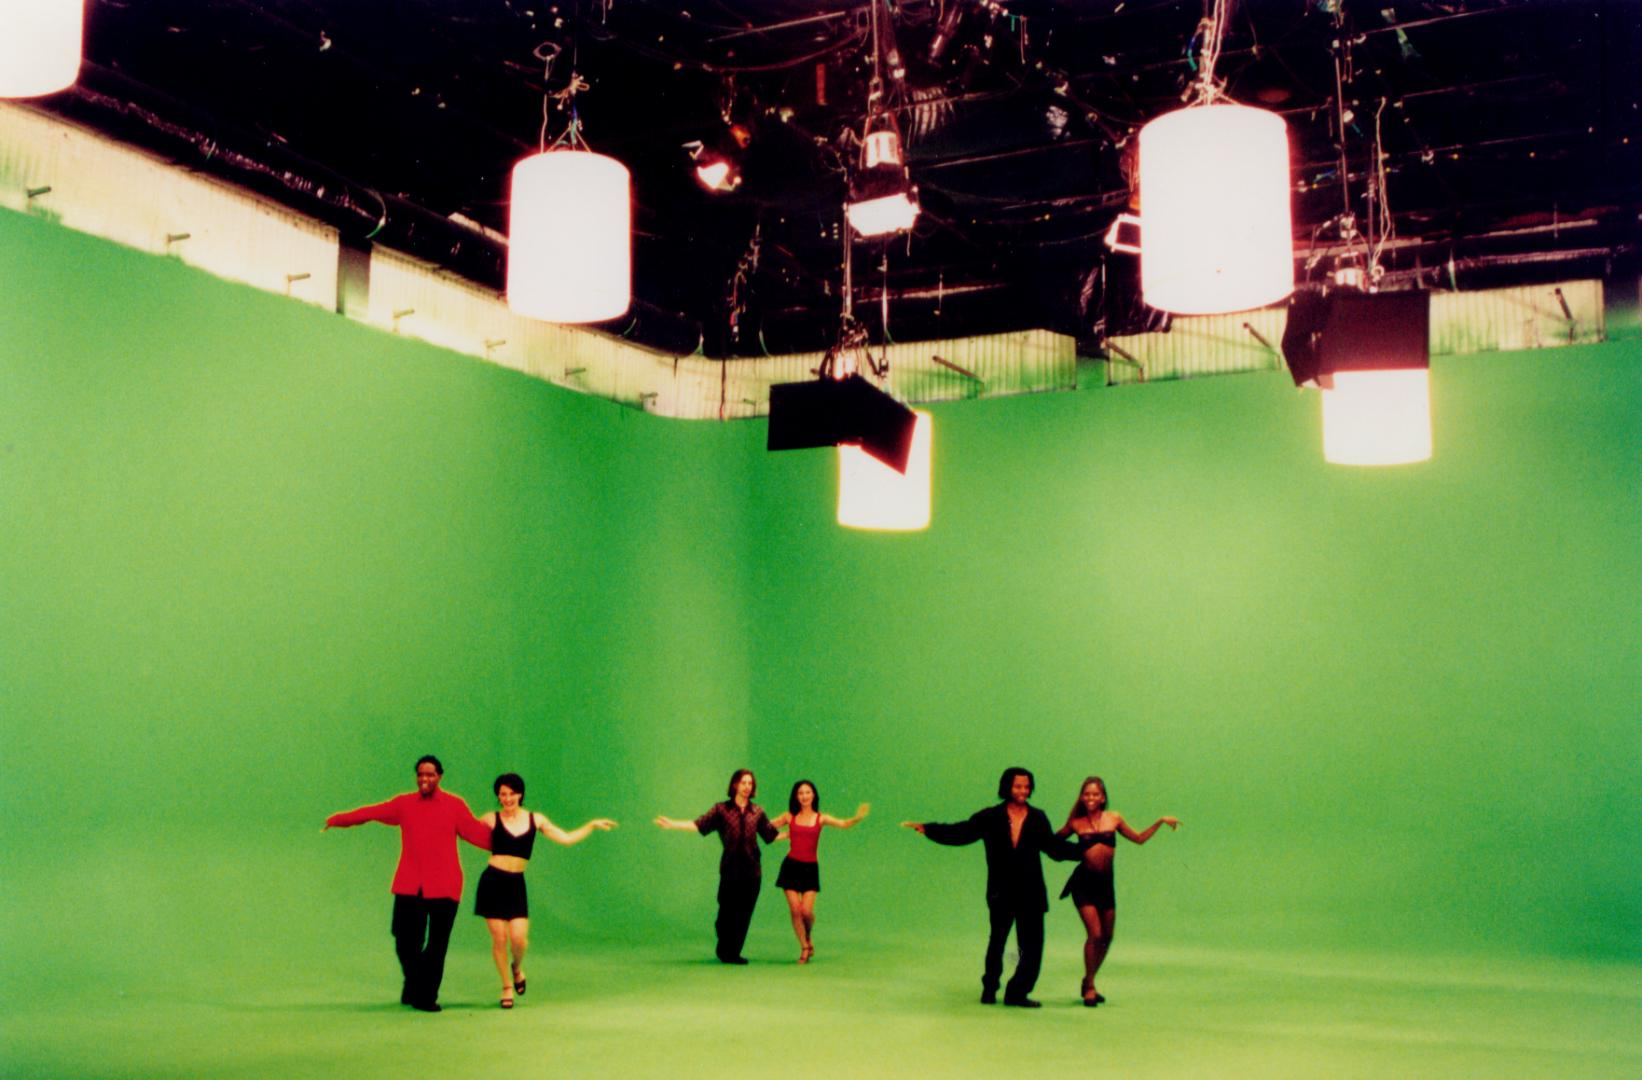 Video Tutorial: Using the Green Screen Effect in iMovie   Cosmic